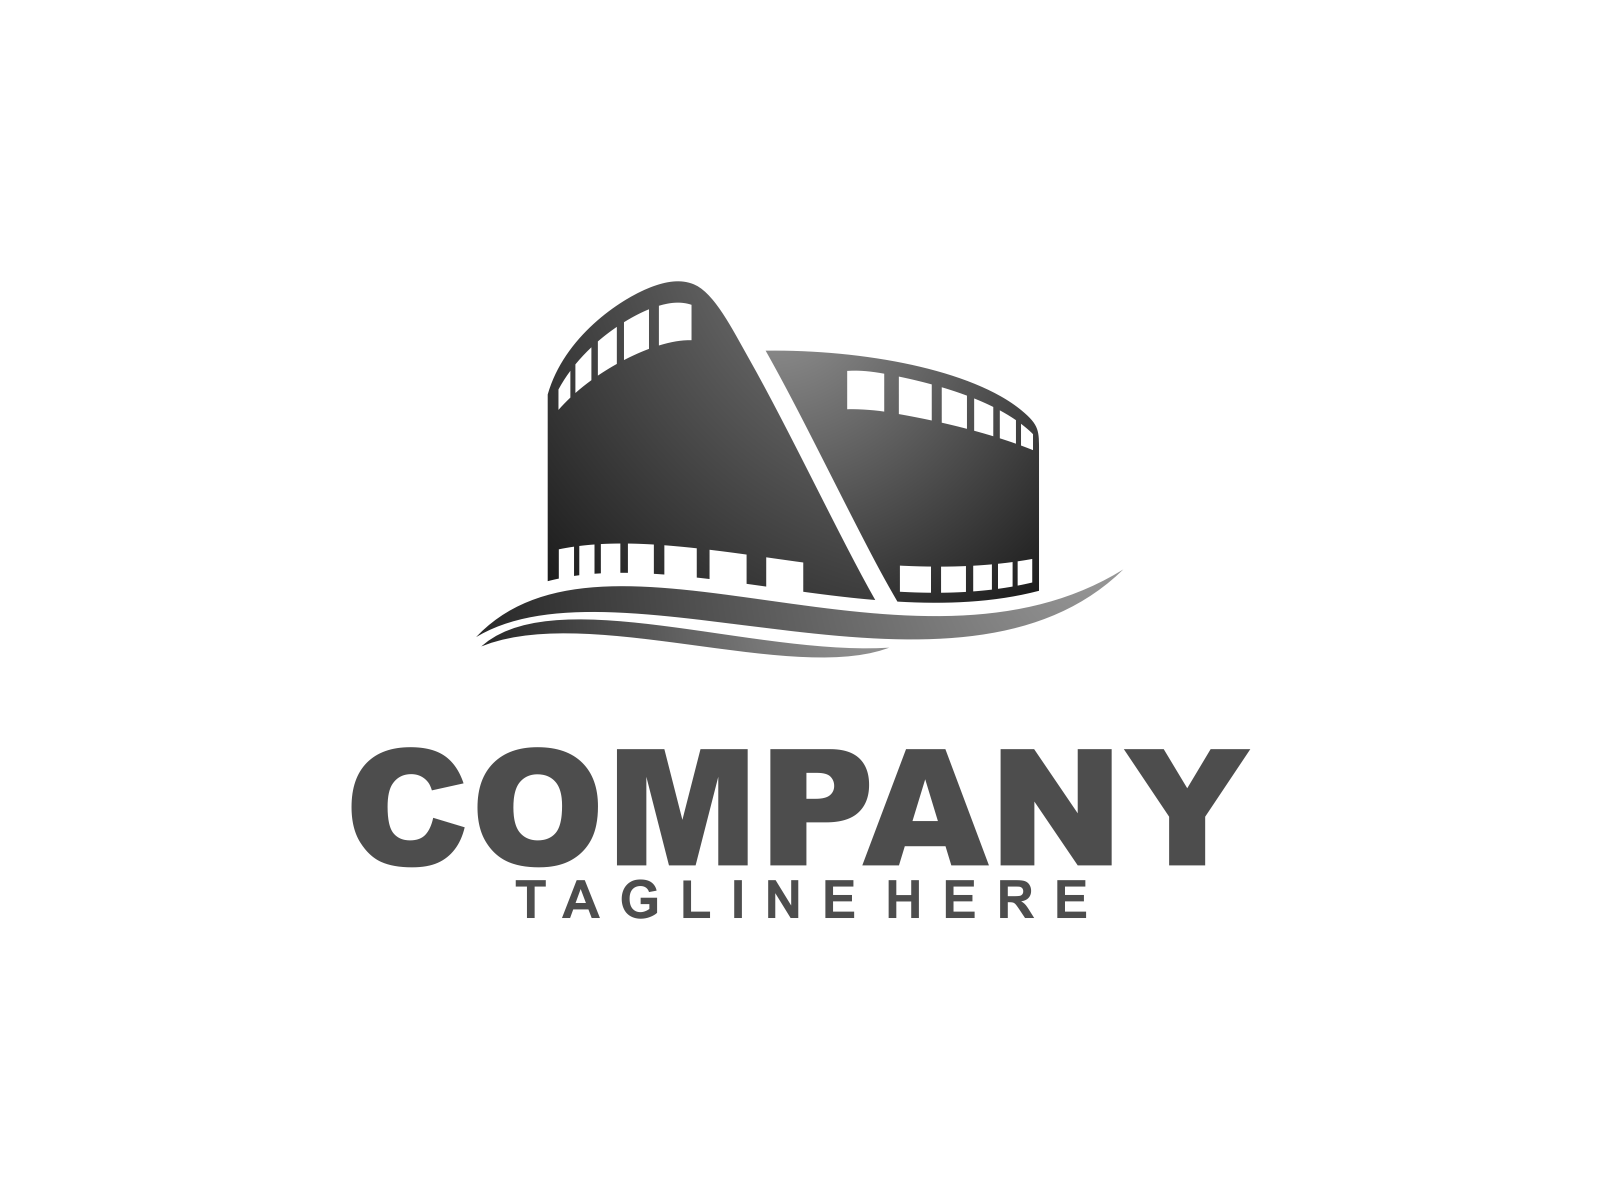 Studio Film by Meremelek  a perfect logo for Industrial